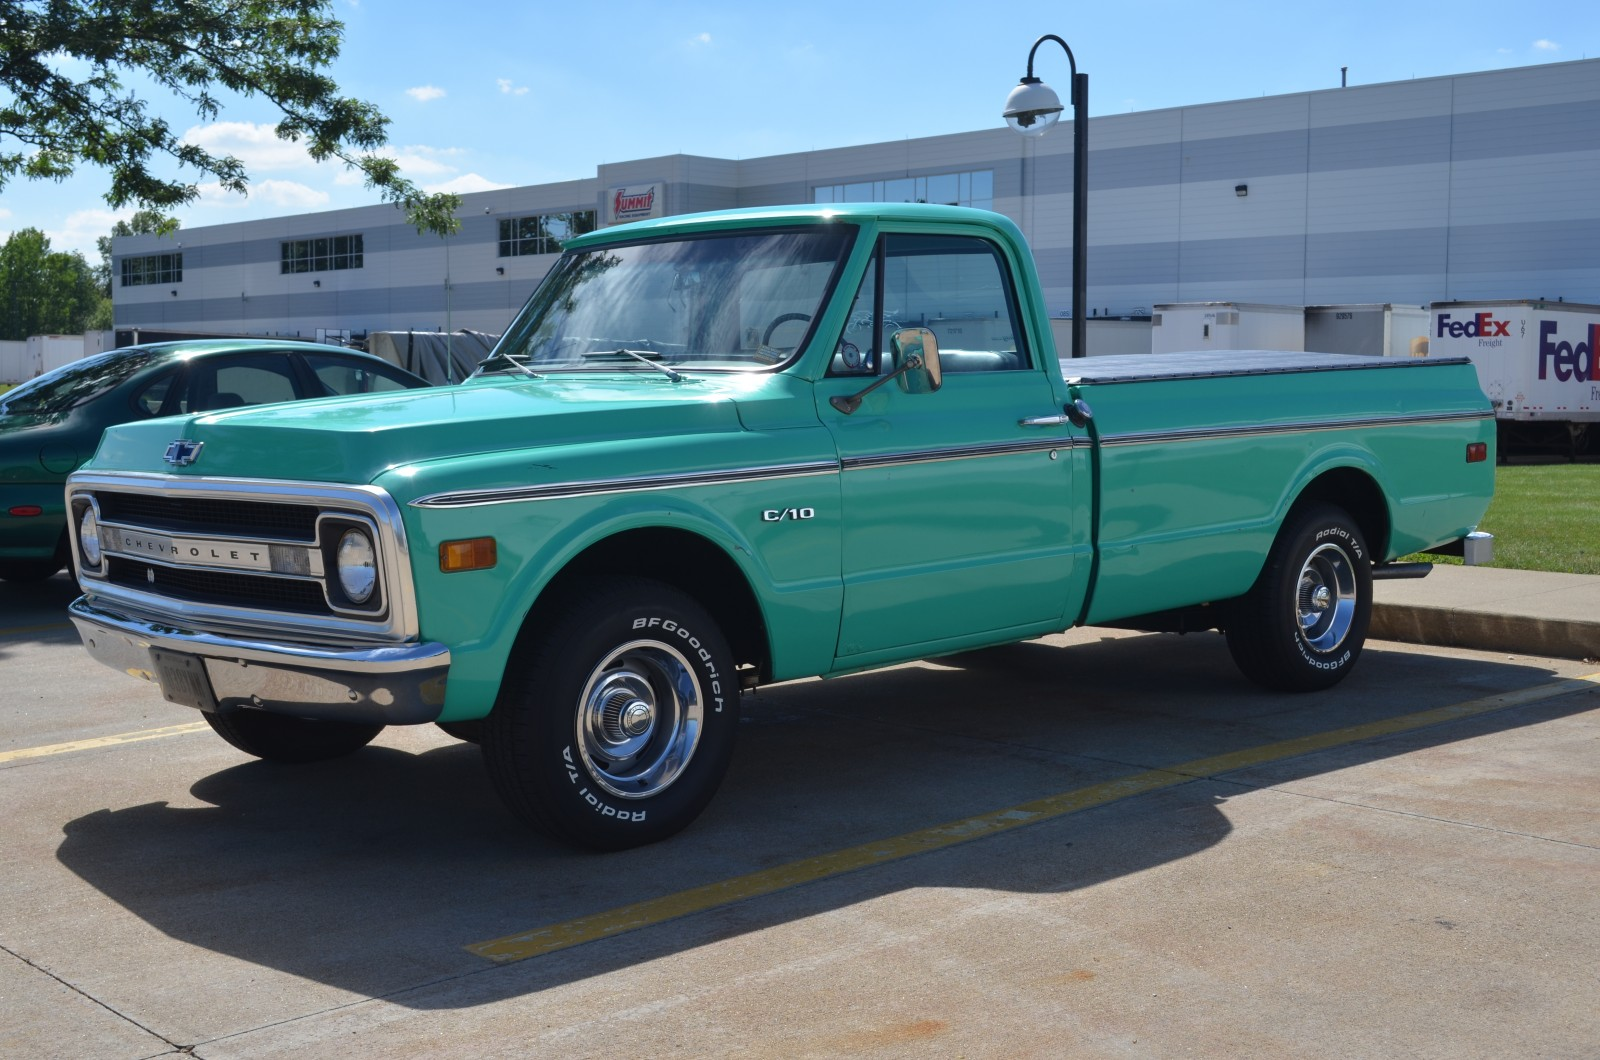 Pickup chevy c10 pickup truck : Lot Shots Find of the Week: 1969 Chevrolet C10 Pickup - OnAllCylinders